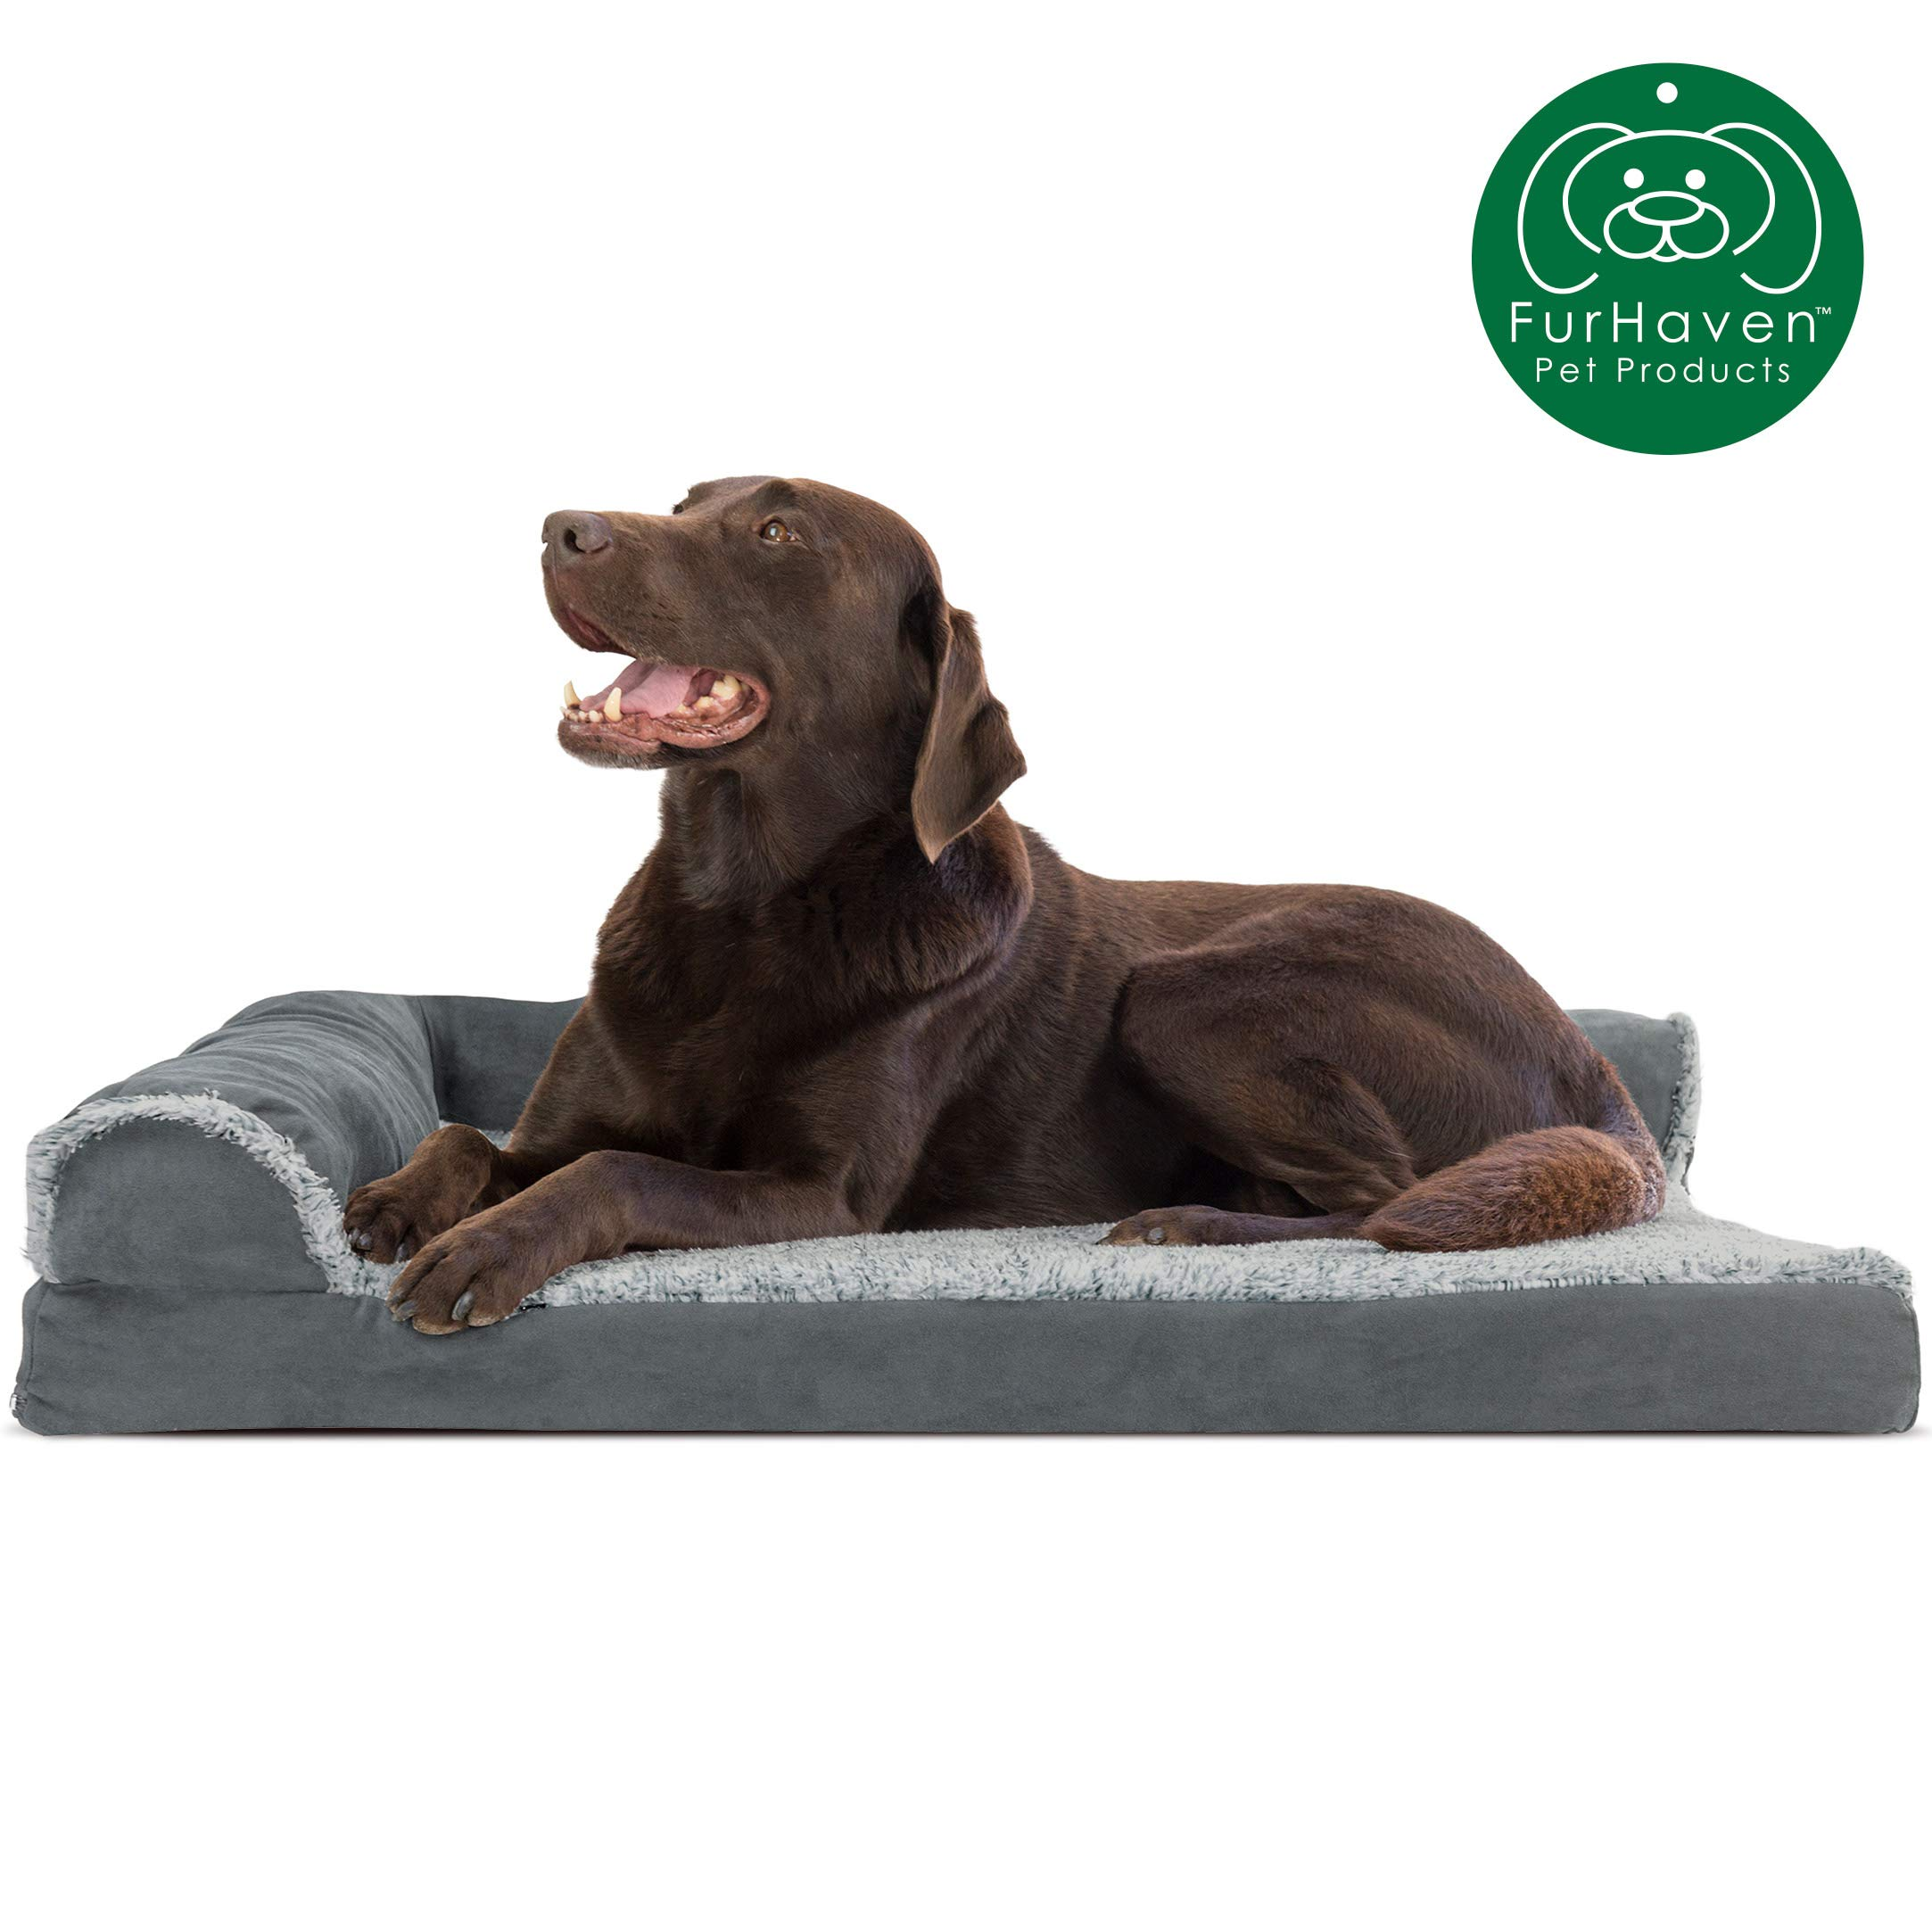 Furhaven Pet Dog Bed | Deluxe Orthopedic Two-Tone Plush Faux Fur & Suede L Shaped Chaise Lounge Living Room Corner Couch Pet Bed w/ Removable Cover for Dogs & Cats, Stone Gray, Large by Furhaven